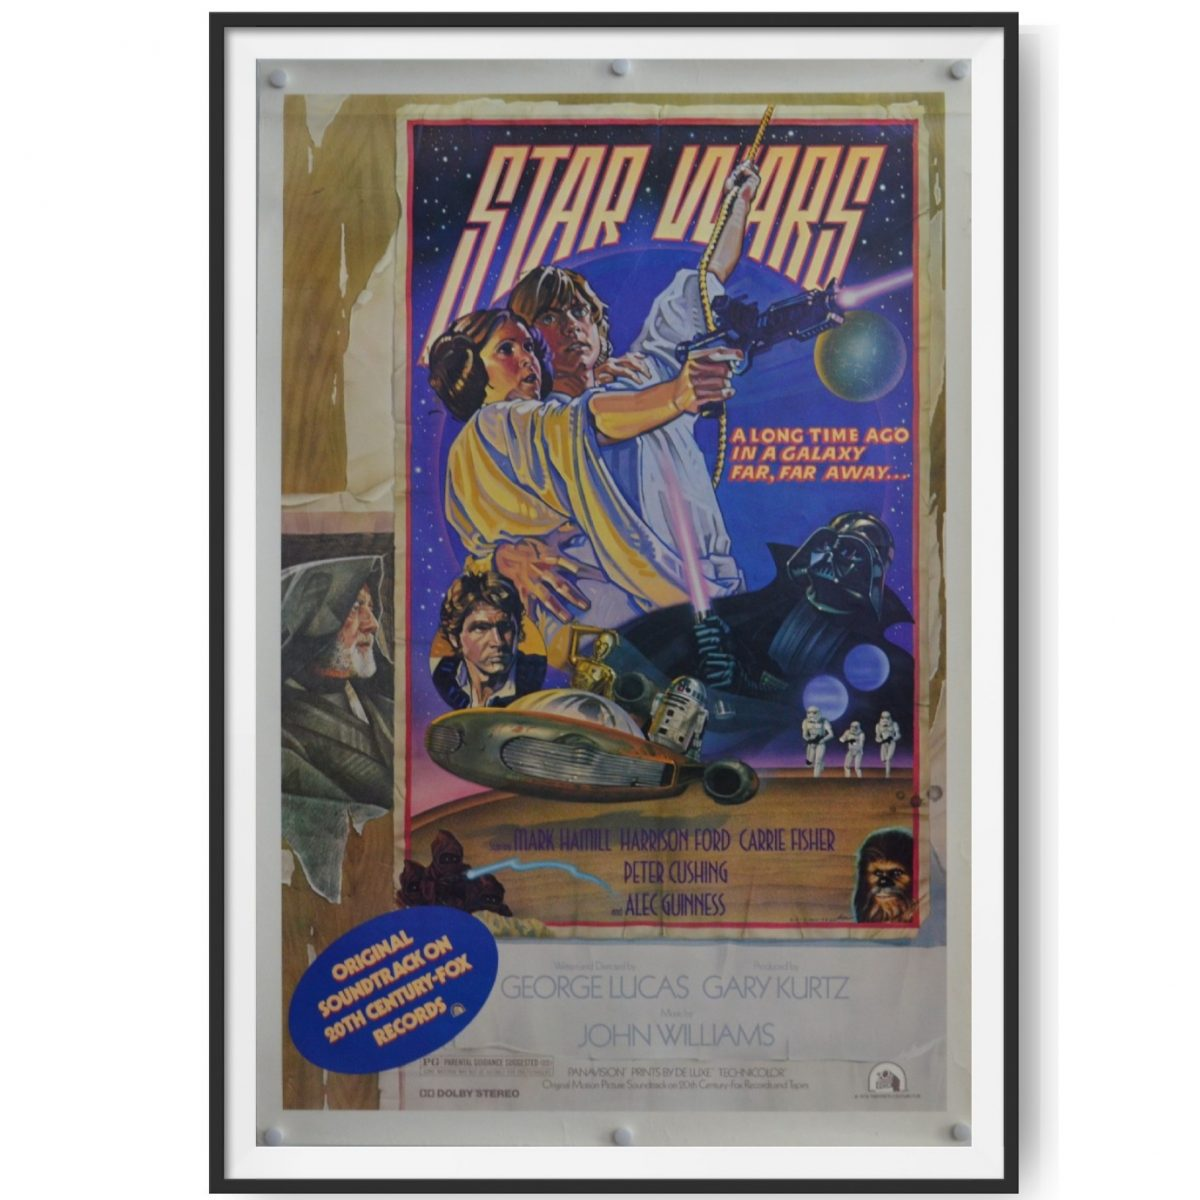 This is a Style D cinema poster for the film Star Wars. Luke Skywalker and Princess Leia feature prominently in the image.